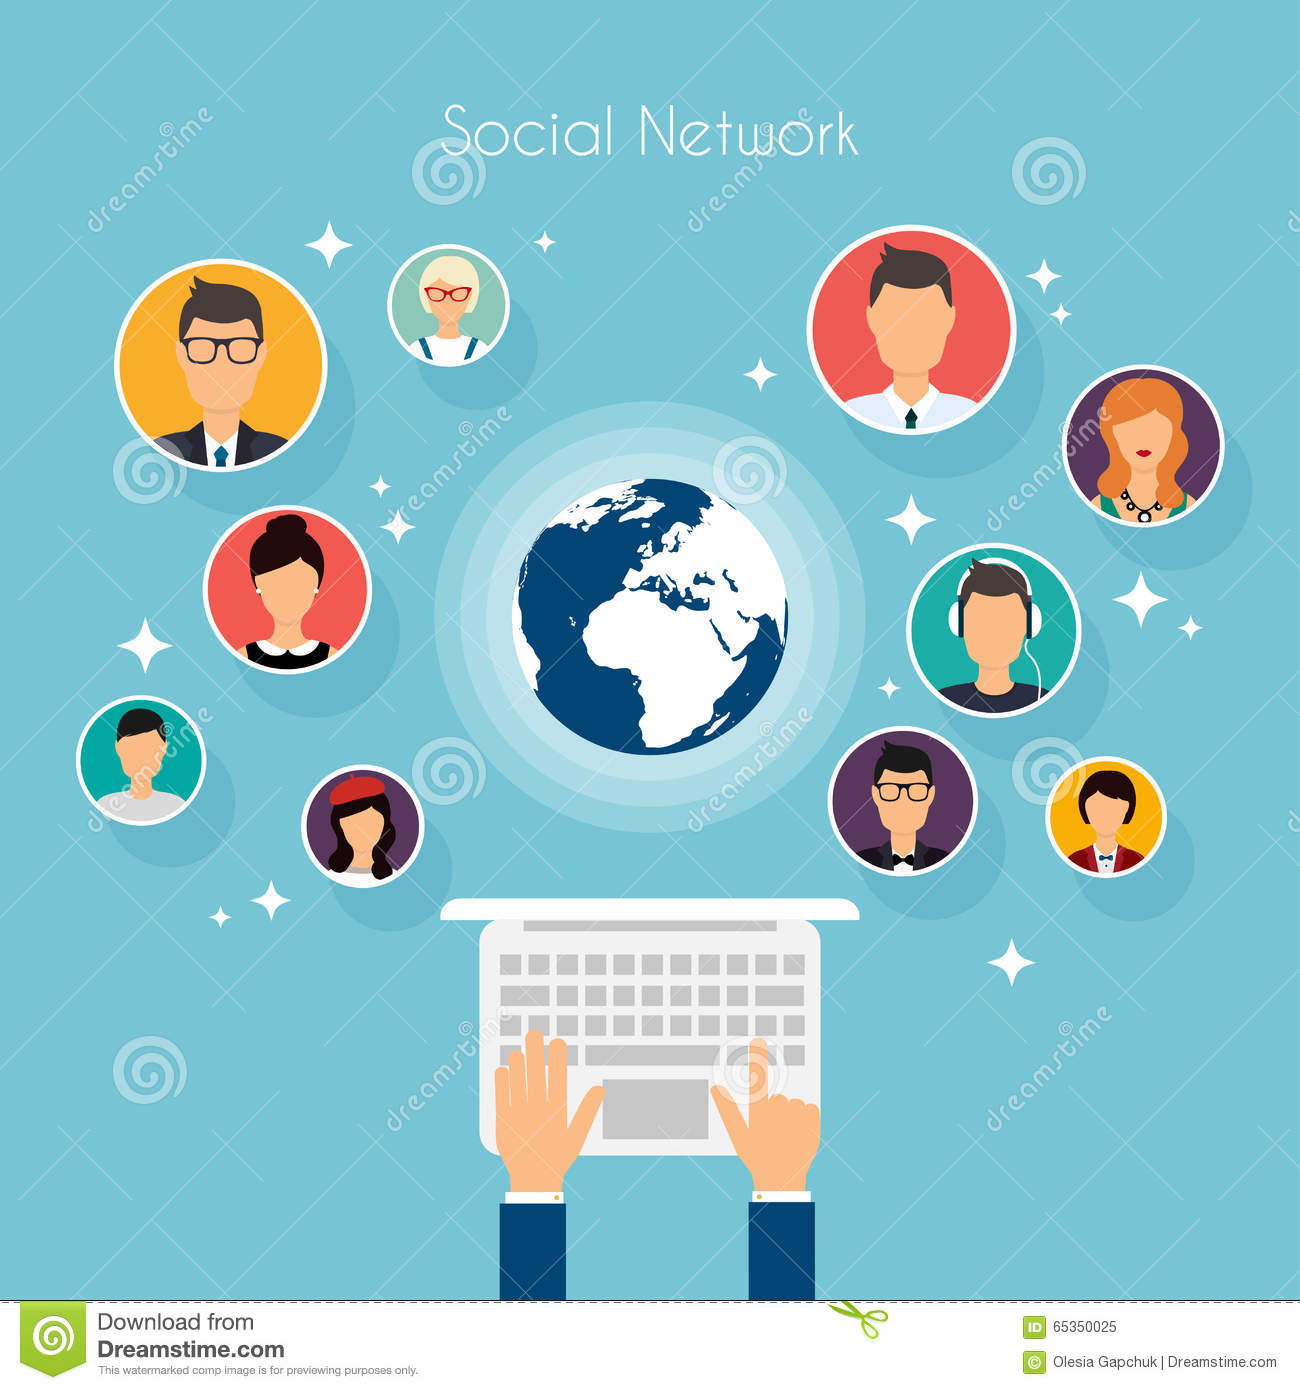 social-network-vector-concept-flat-design-illustration-web-sites-infographic-human-hand-laptop-avatars-set-65350025.jpg